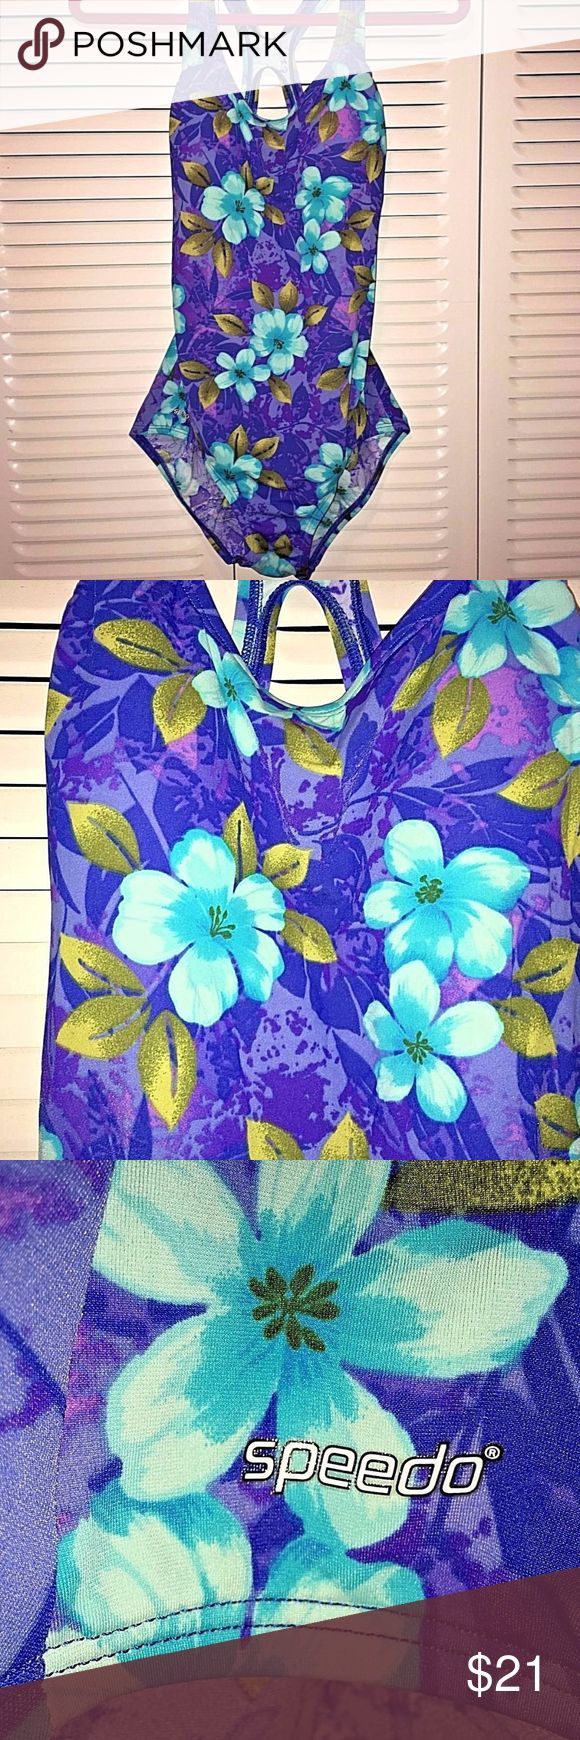 """Speedo One-piece Swimsuit Blue Purple Floral Print Racer-back cut straps on upper back. It is fully lined. Measurements: armpit to armpit 16"""". Length from top of strap to bottom hem: 29"""". 🌺Thank you for checking out my Closet and please feel free to ask any questions. I consider all reasonable offers🌺 Speedo Swim One Pieces"""